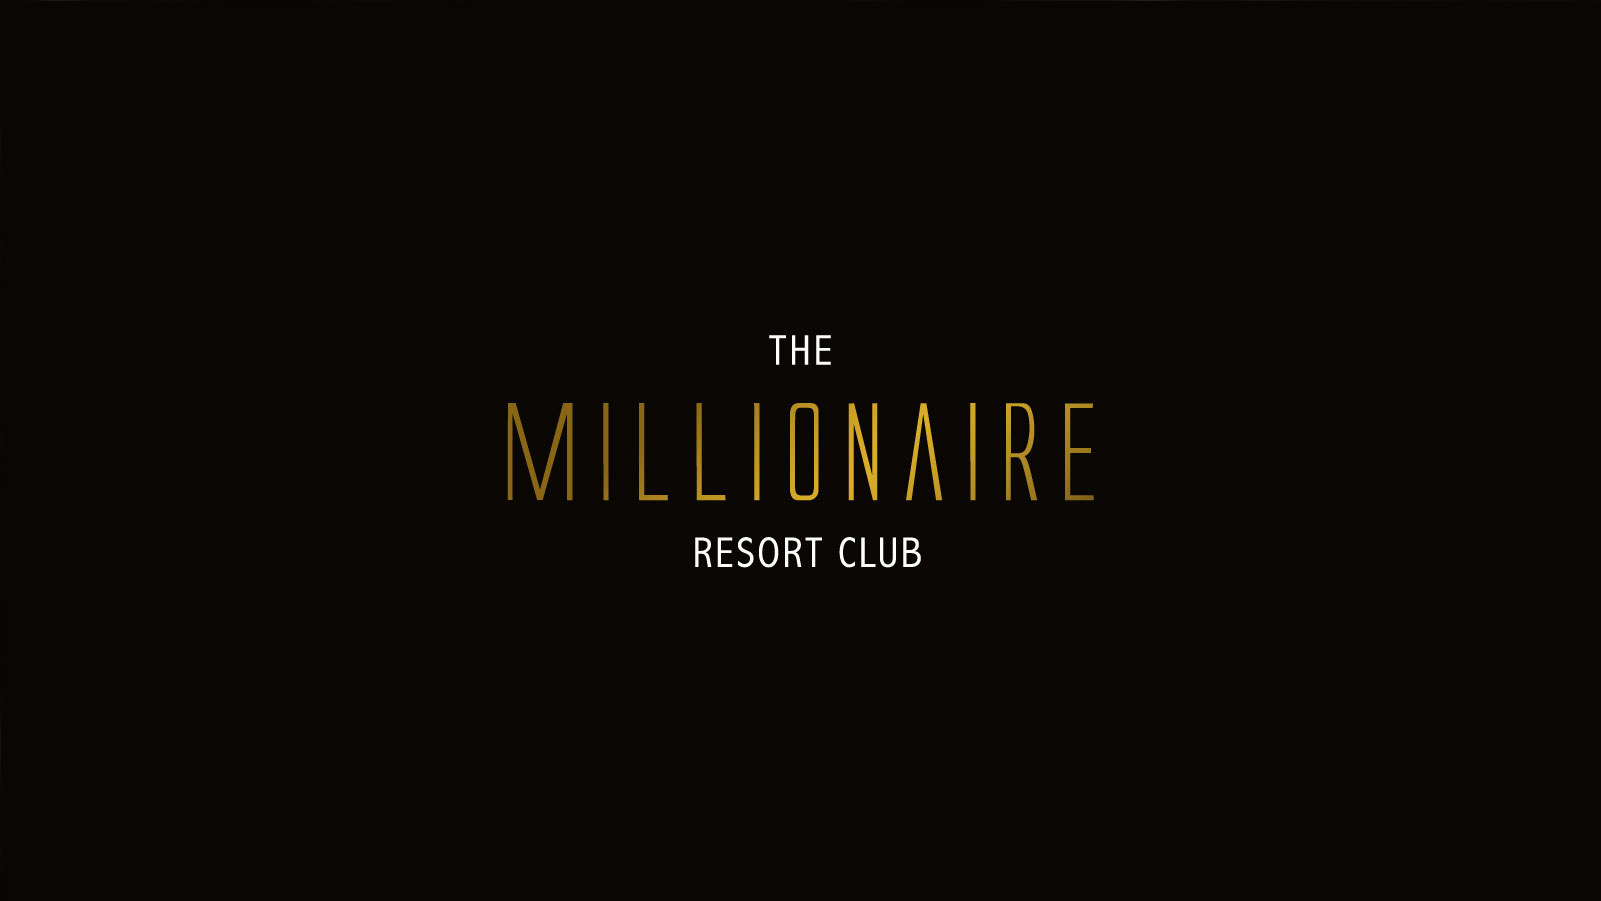 The Millionaire Club Resort